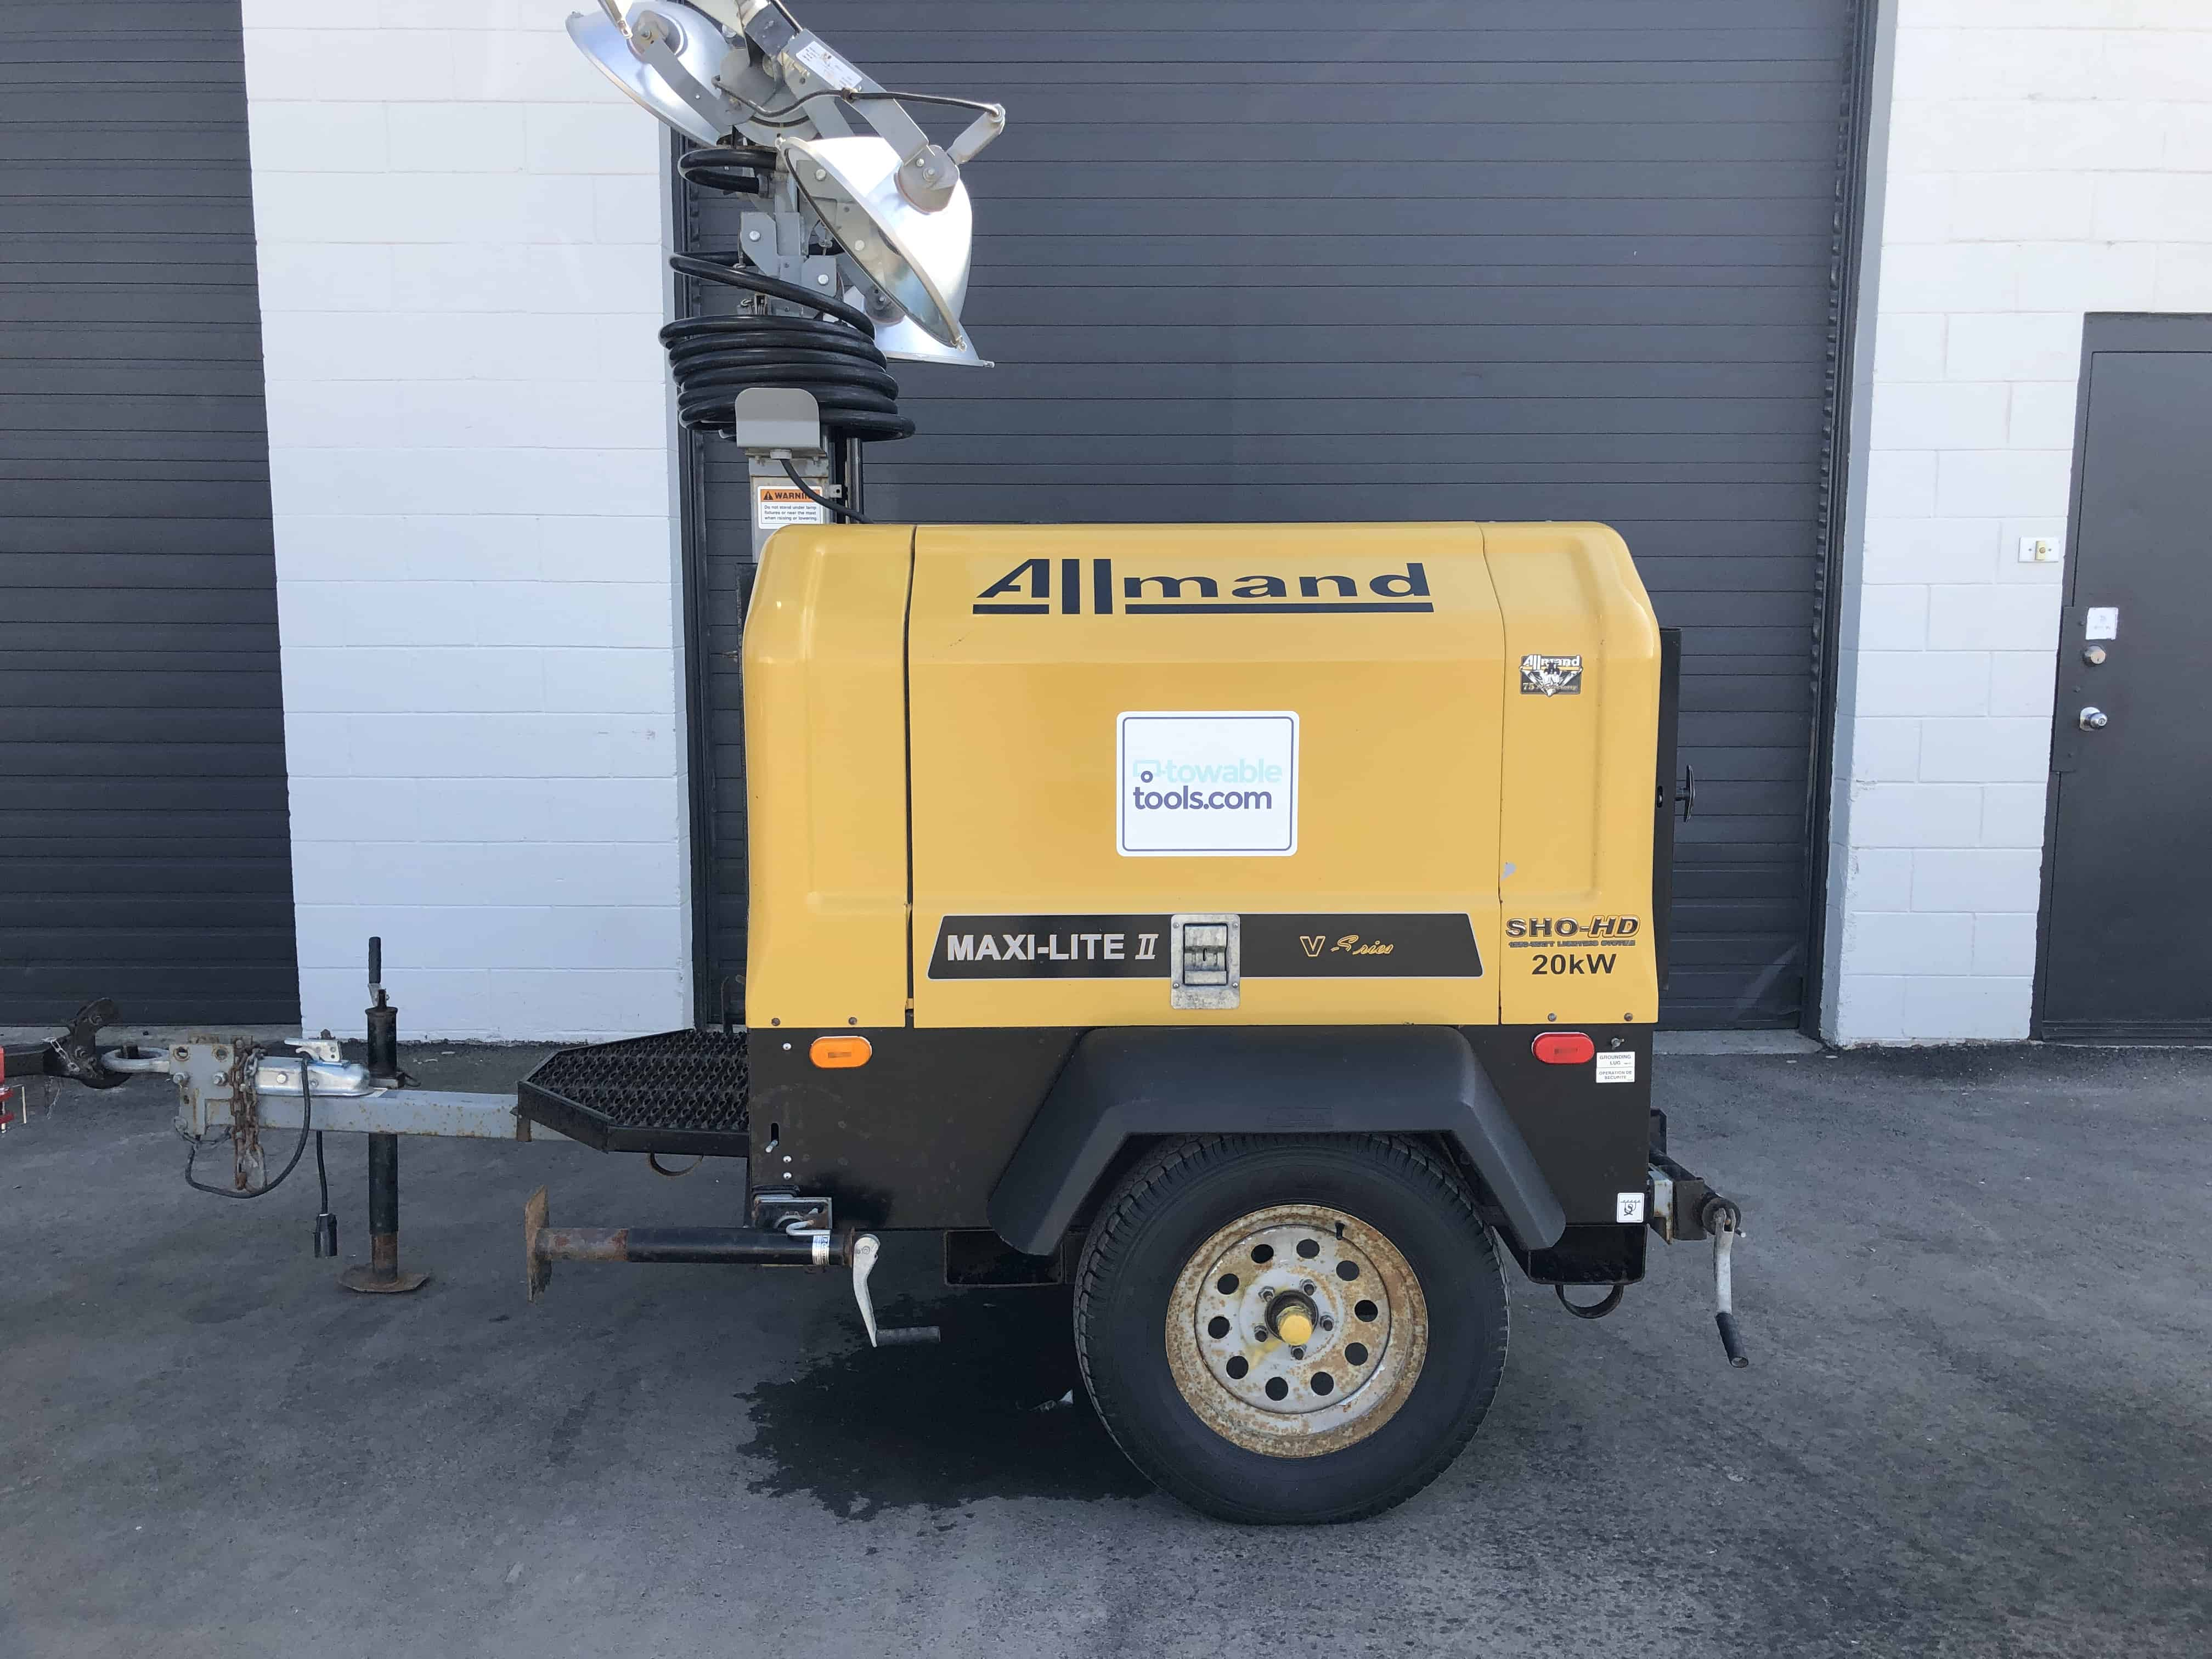 Used Allmand 20 kw light tower generator for sale in Alberta - Towable Tools